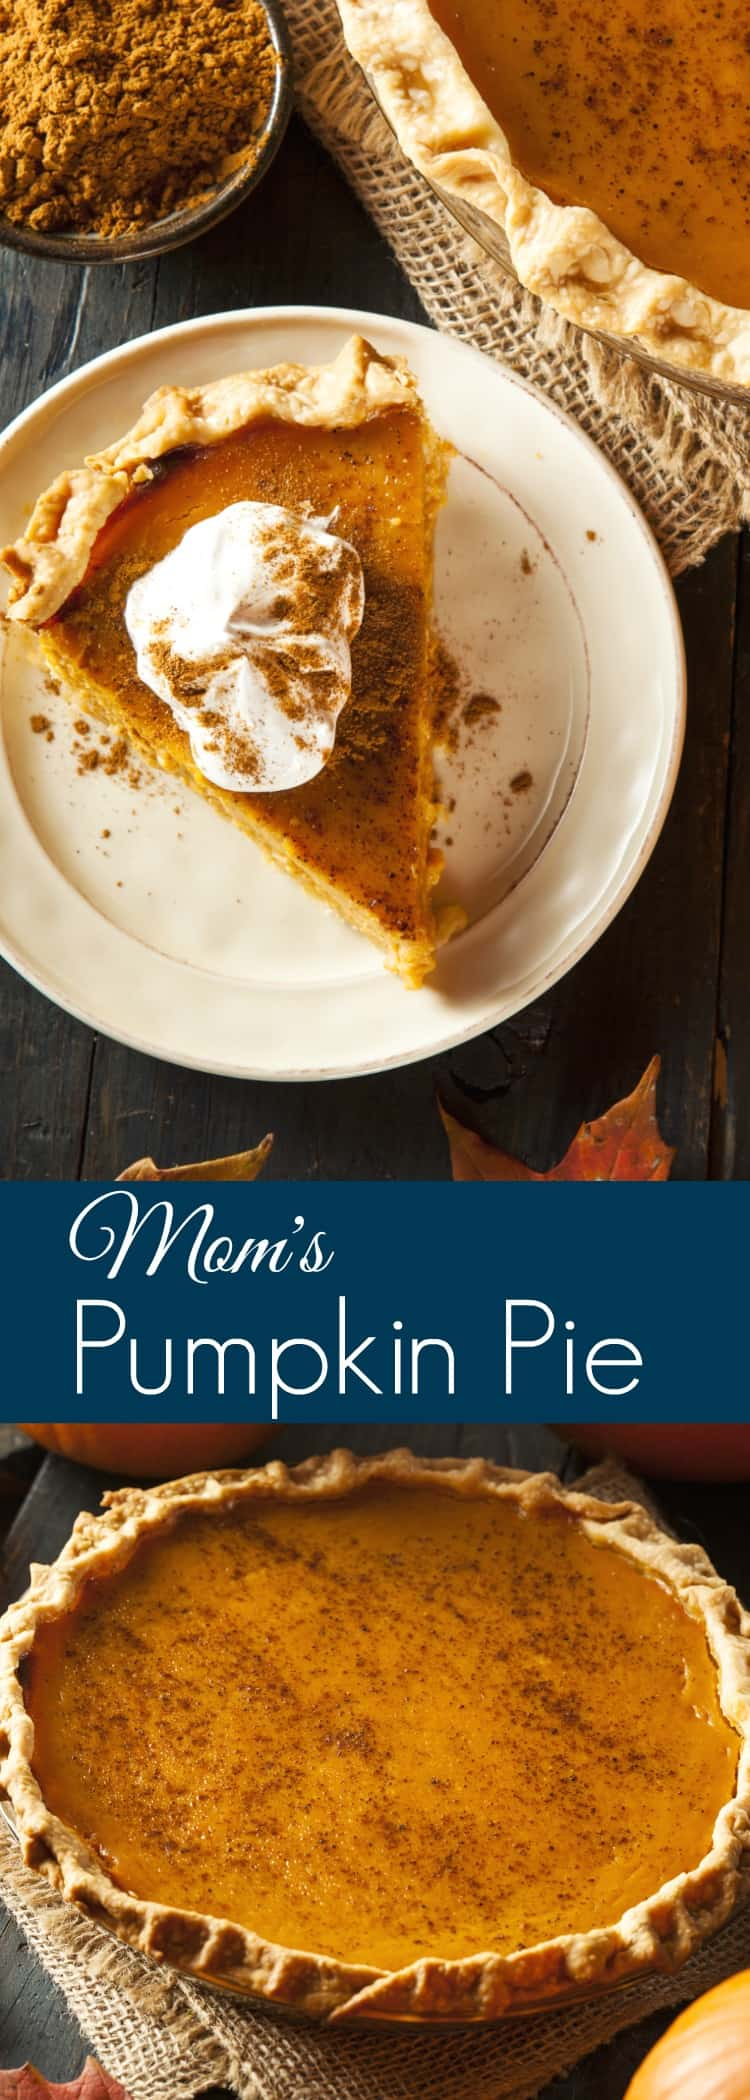 Easy Homemade Pumpkin Pie Recipe you can make from scratch for Breakfast, Lunch & Dinner! This homemade Pumpkin Pie Recipe is BIG on flavour! It's a Winner! #pumpkin #pumpkinpie #libbyspumpkinpie #homemadepumpkinpie #thanksgiving #pumpkin #pie #piecrust #pieladybakes.com